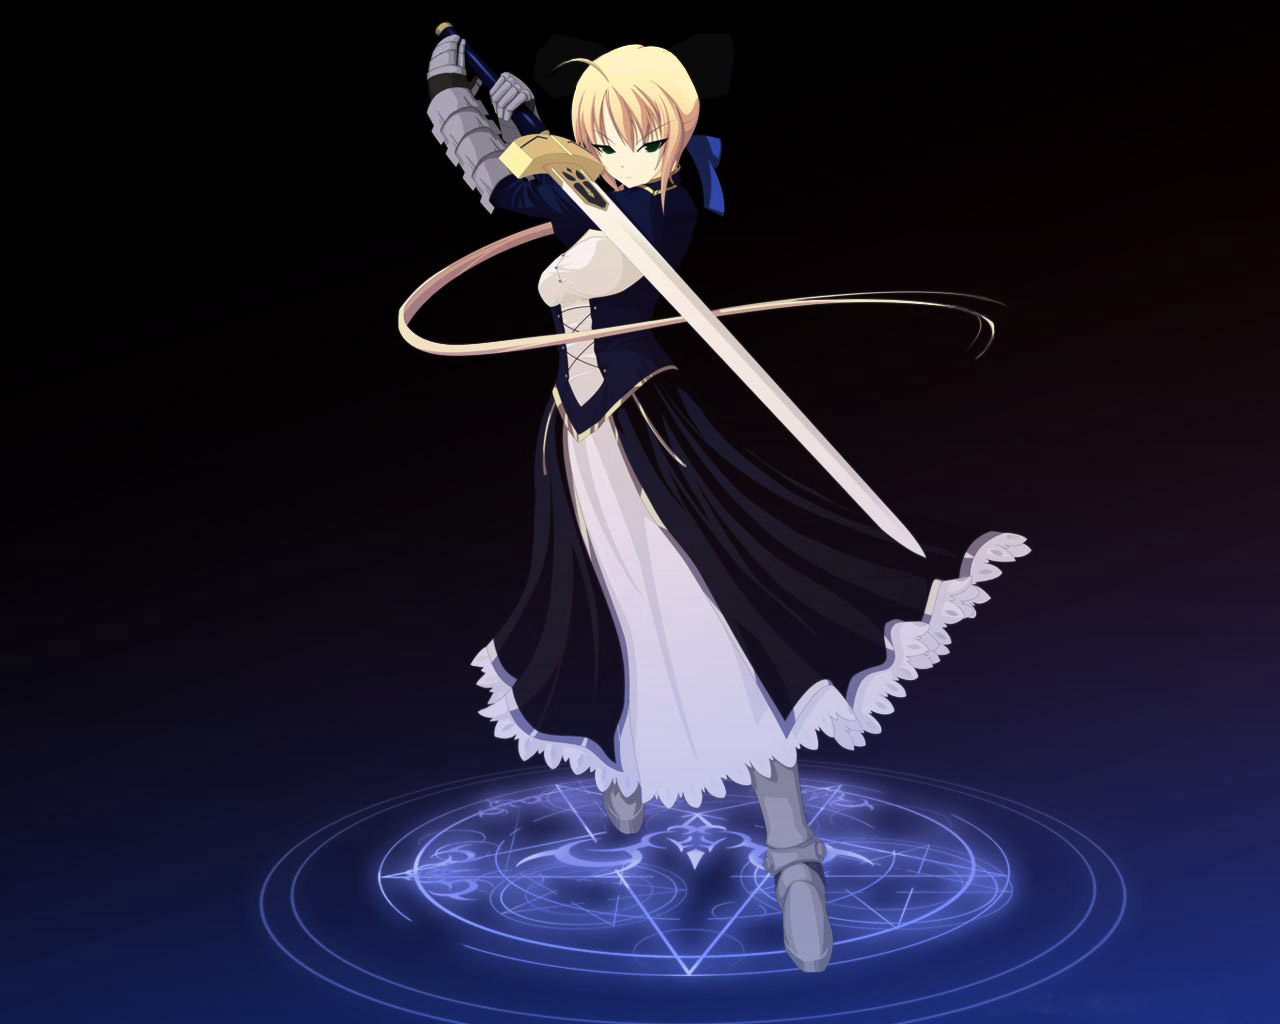 Saber   Fate Stay Night Wallpaper 24684502 1280x1024